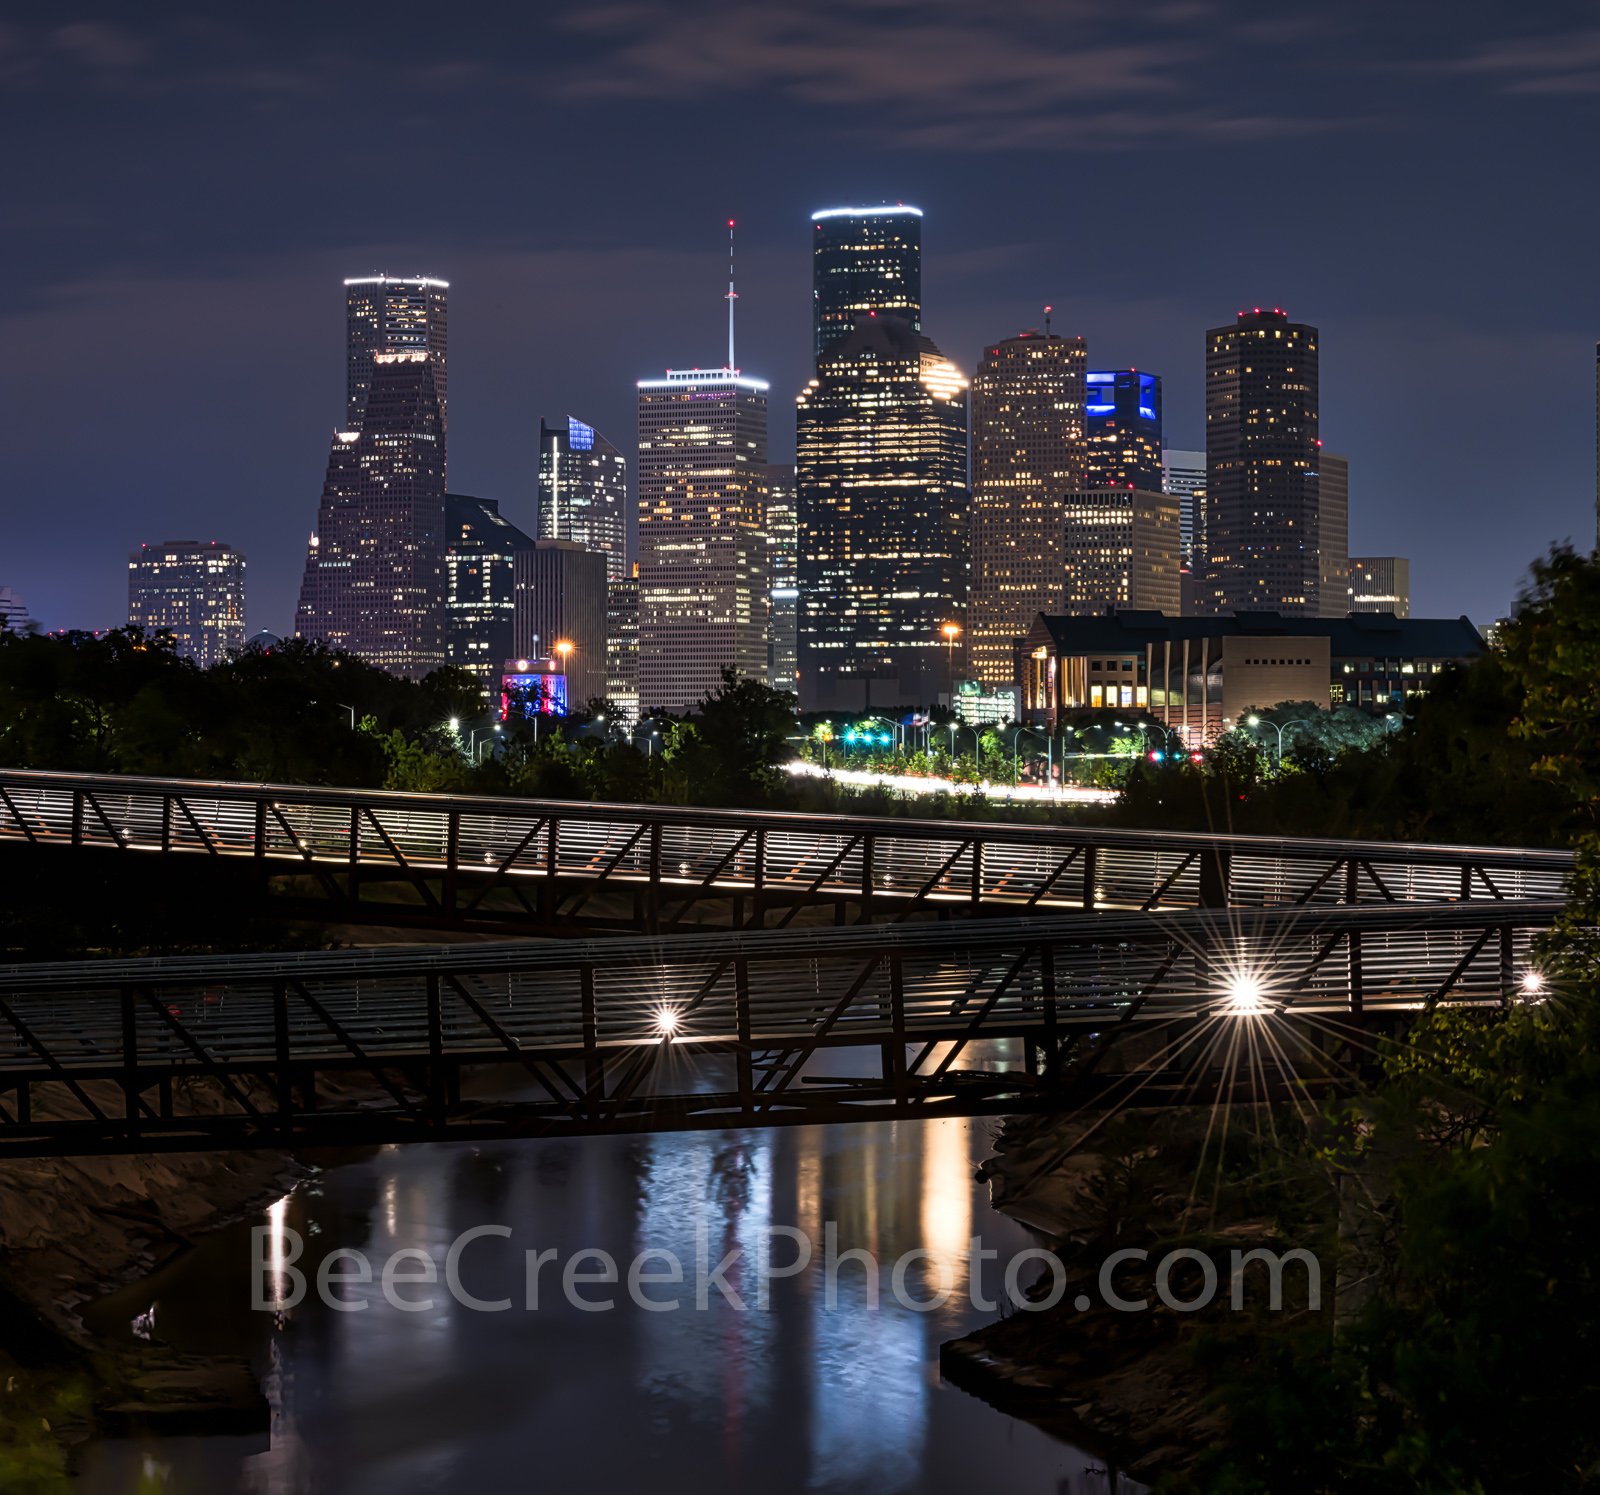 Houston skyline, Rosemont, pedestrian bridge, pano, panorama, buffalo Bayou, downtown,night, city, parks, cultural events, theater district, sports, music, events, performing arts, Houston stock,  , photo